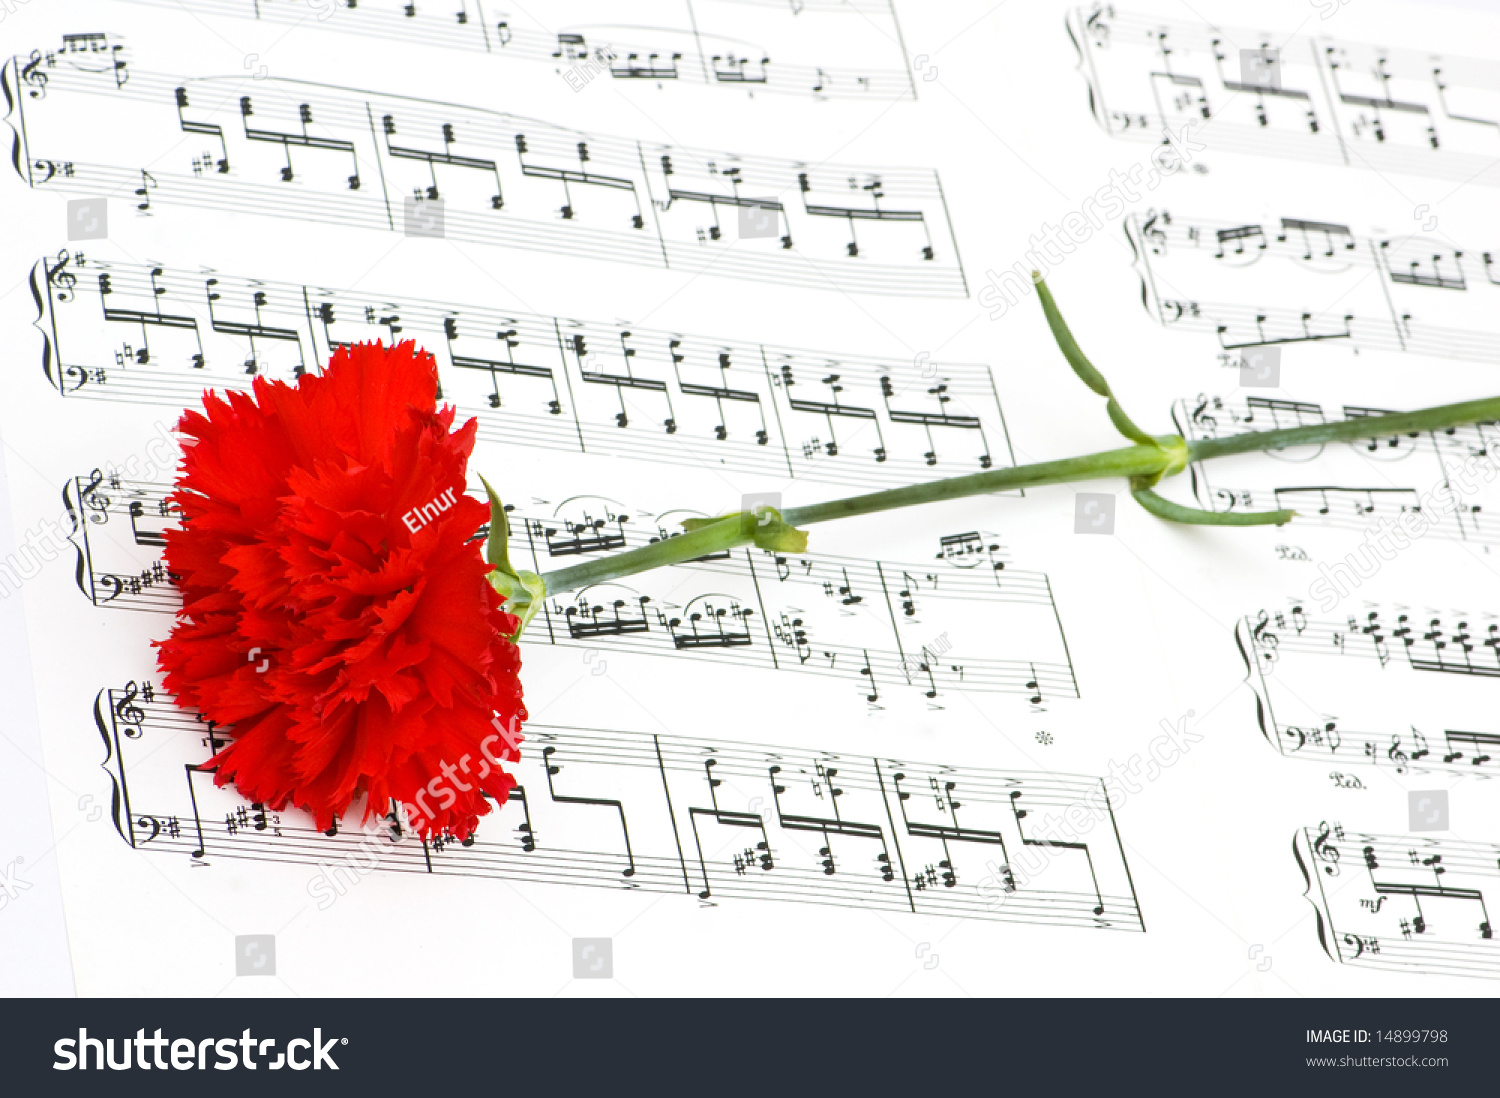 Red carnation flower on musical notes stock photo edit now red carnation flower on musical notes page ccuart Gallery